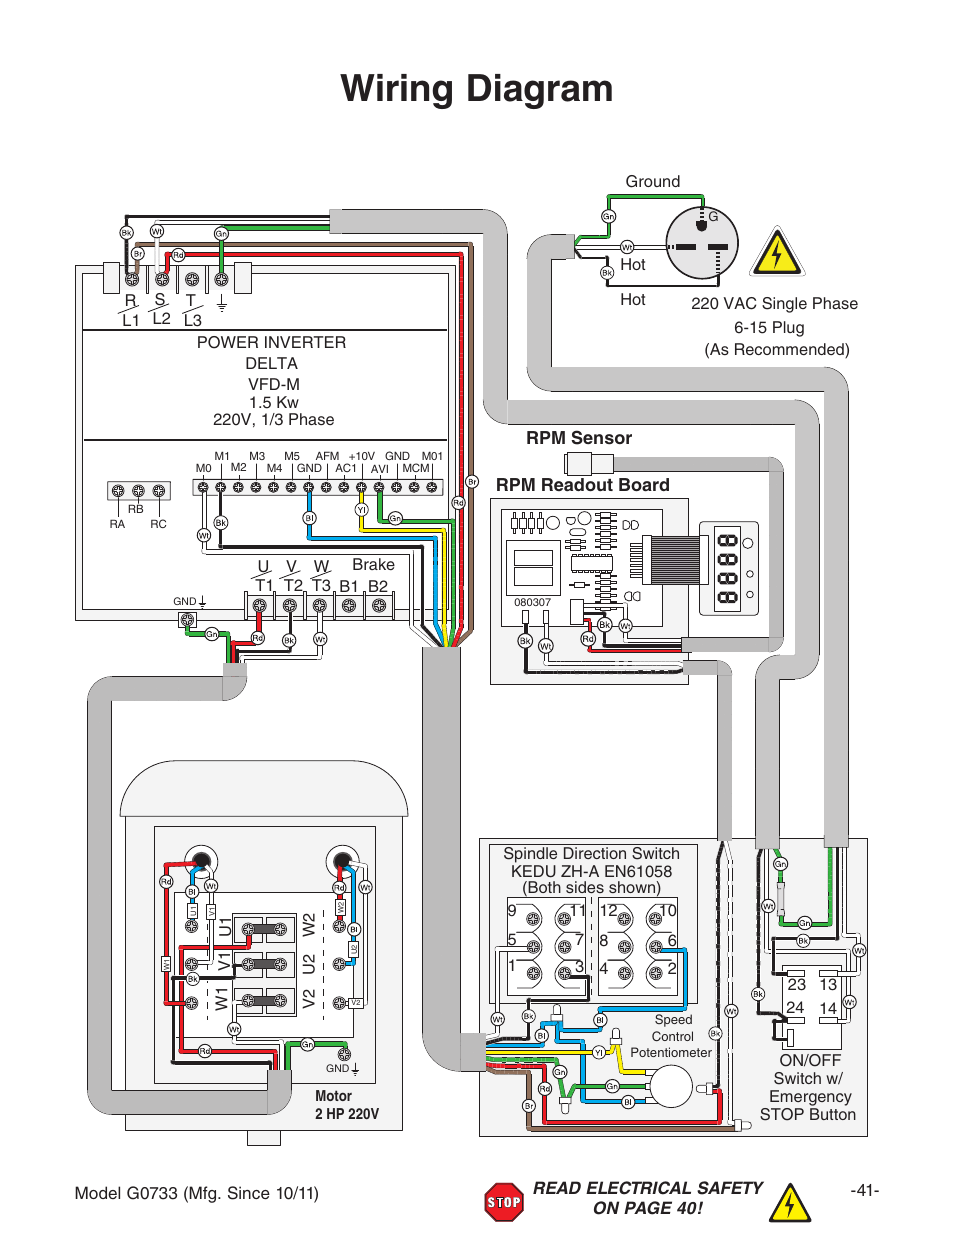 Wiring Diagram  Rpm Sensor Rpm Readout Board